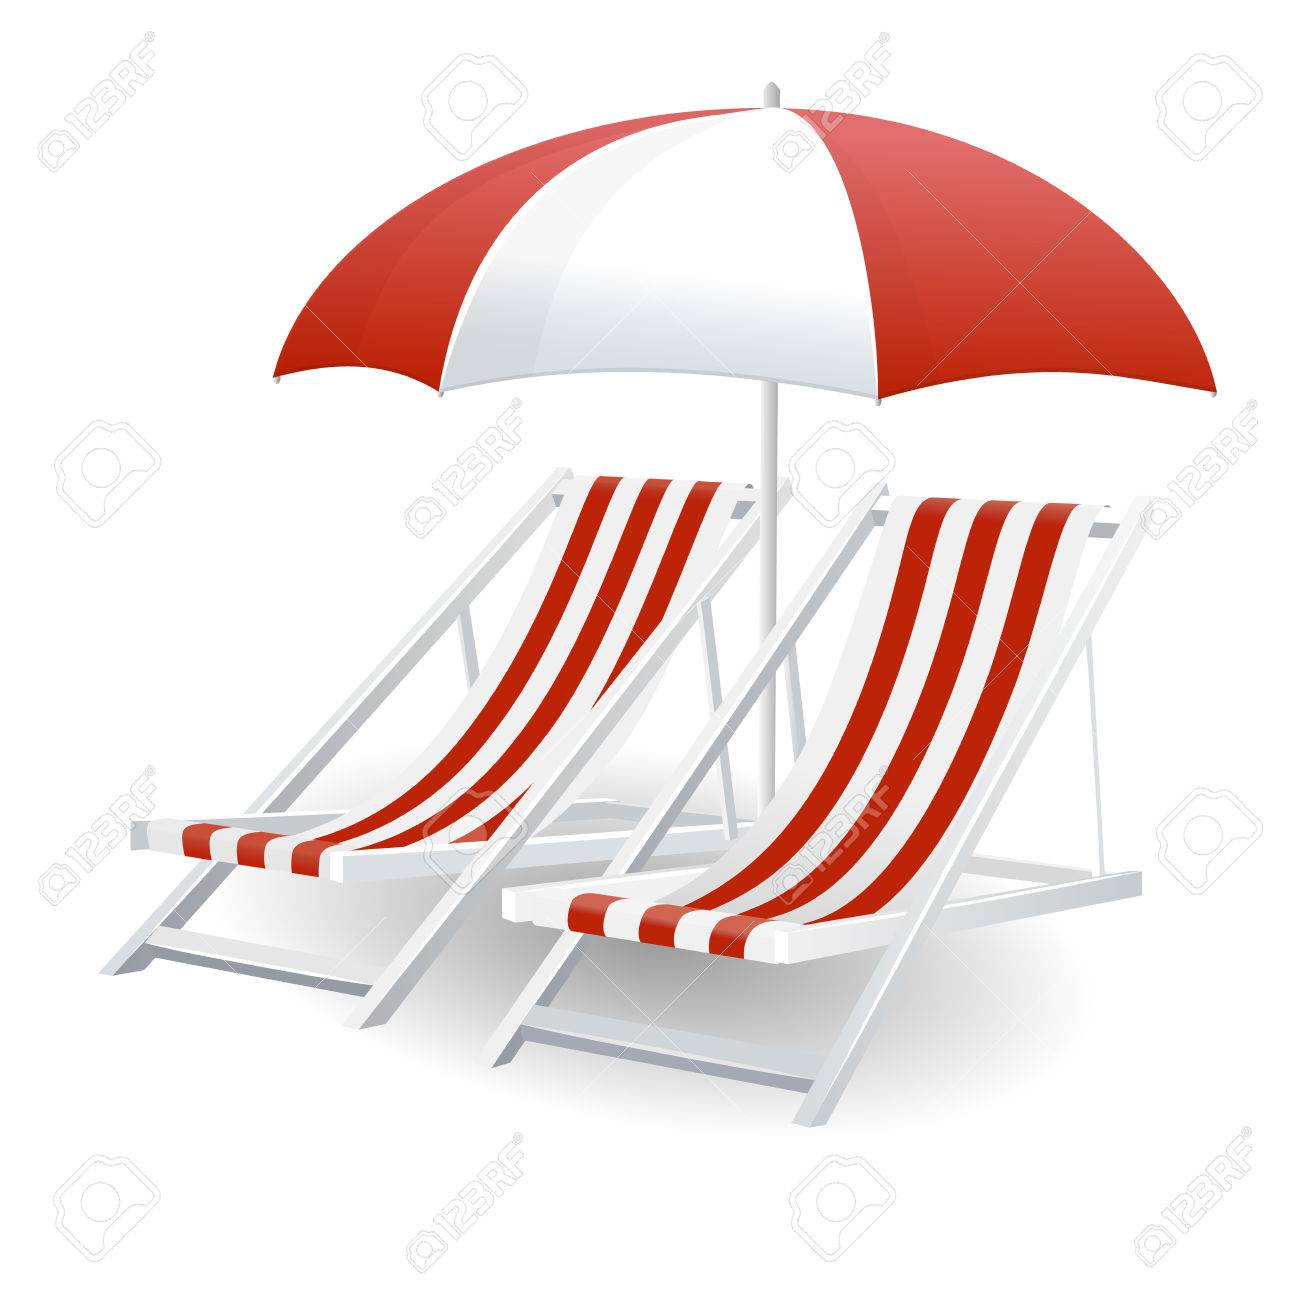 Chair beach umbrella and chair black and white - Chair And Beach Umbrella Isolated On White Stock Vector 29427402